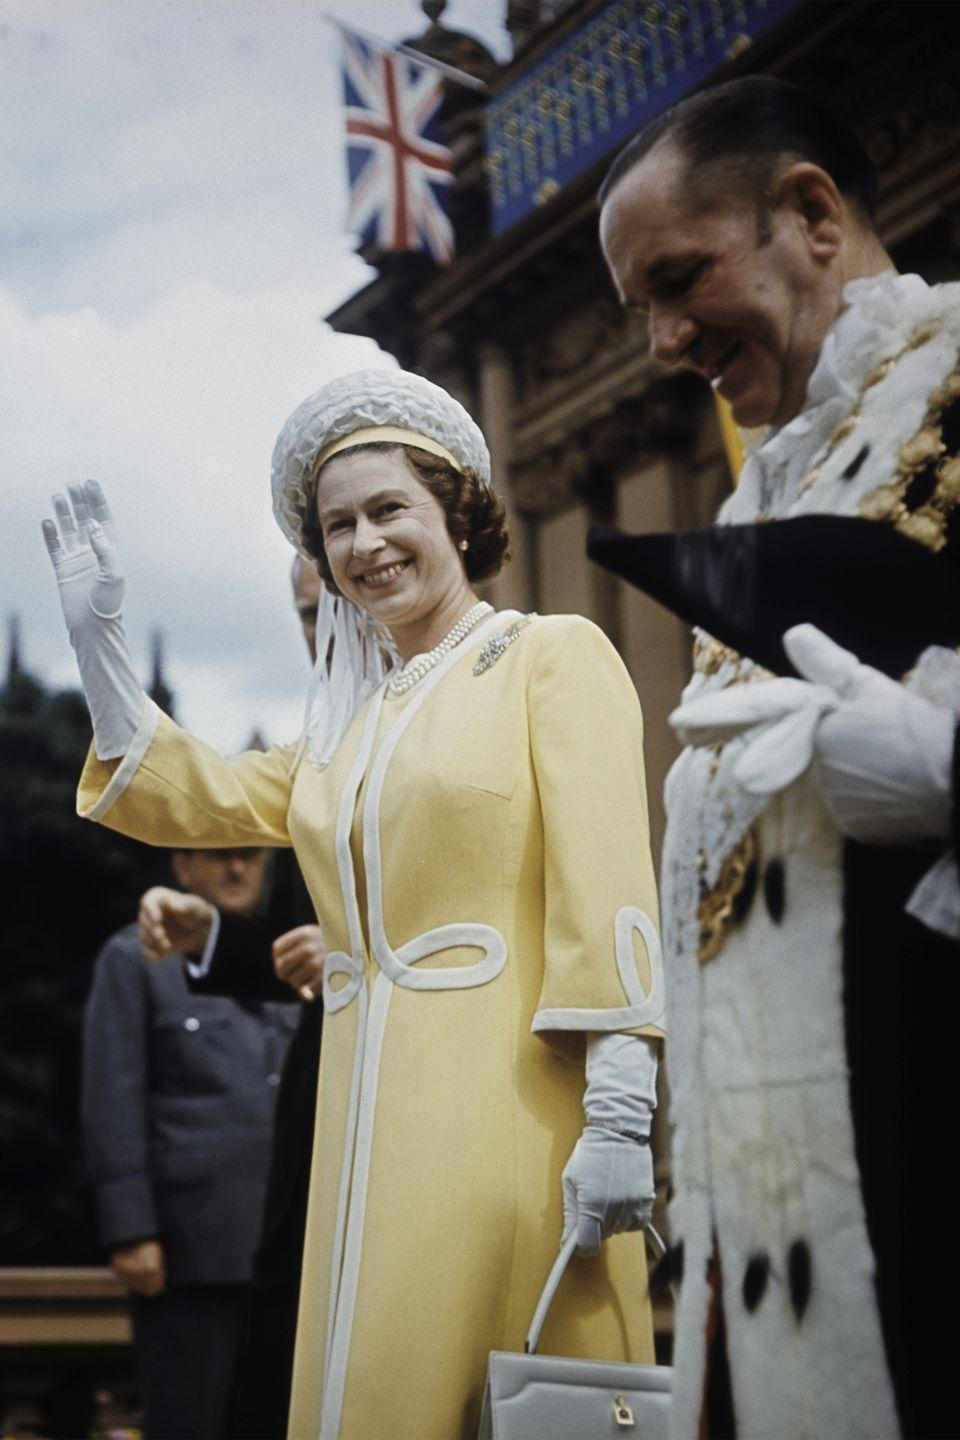 <p>Lord Mayor Emmet McDermott of Sydney accompanied the queen, who was dressed in a yellow coat with white accents, for a walkabout near the Town Hall in Sydney.<br></p>